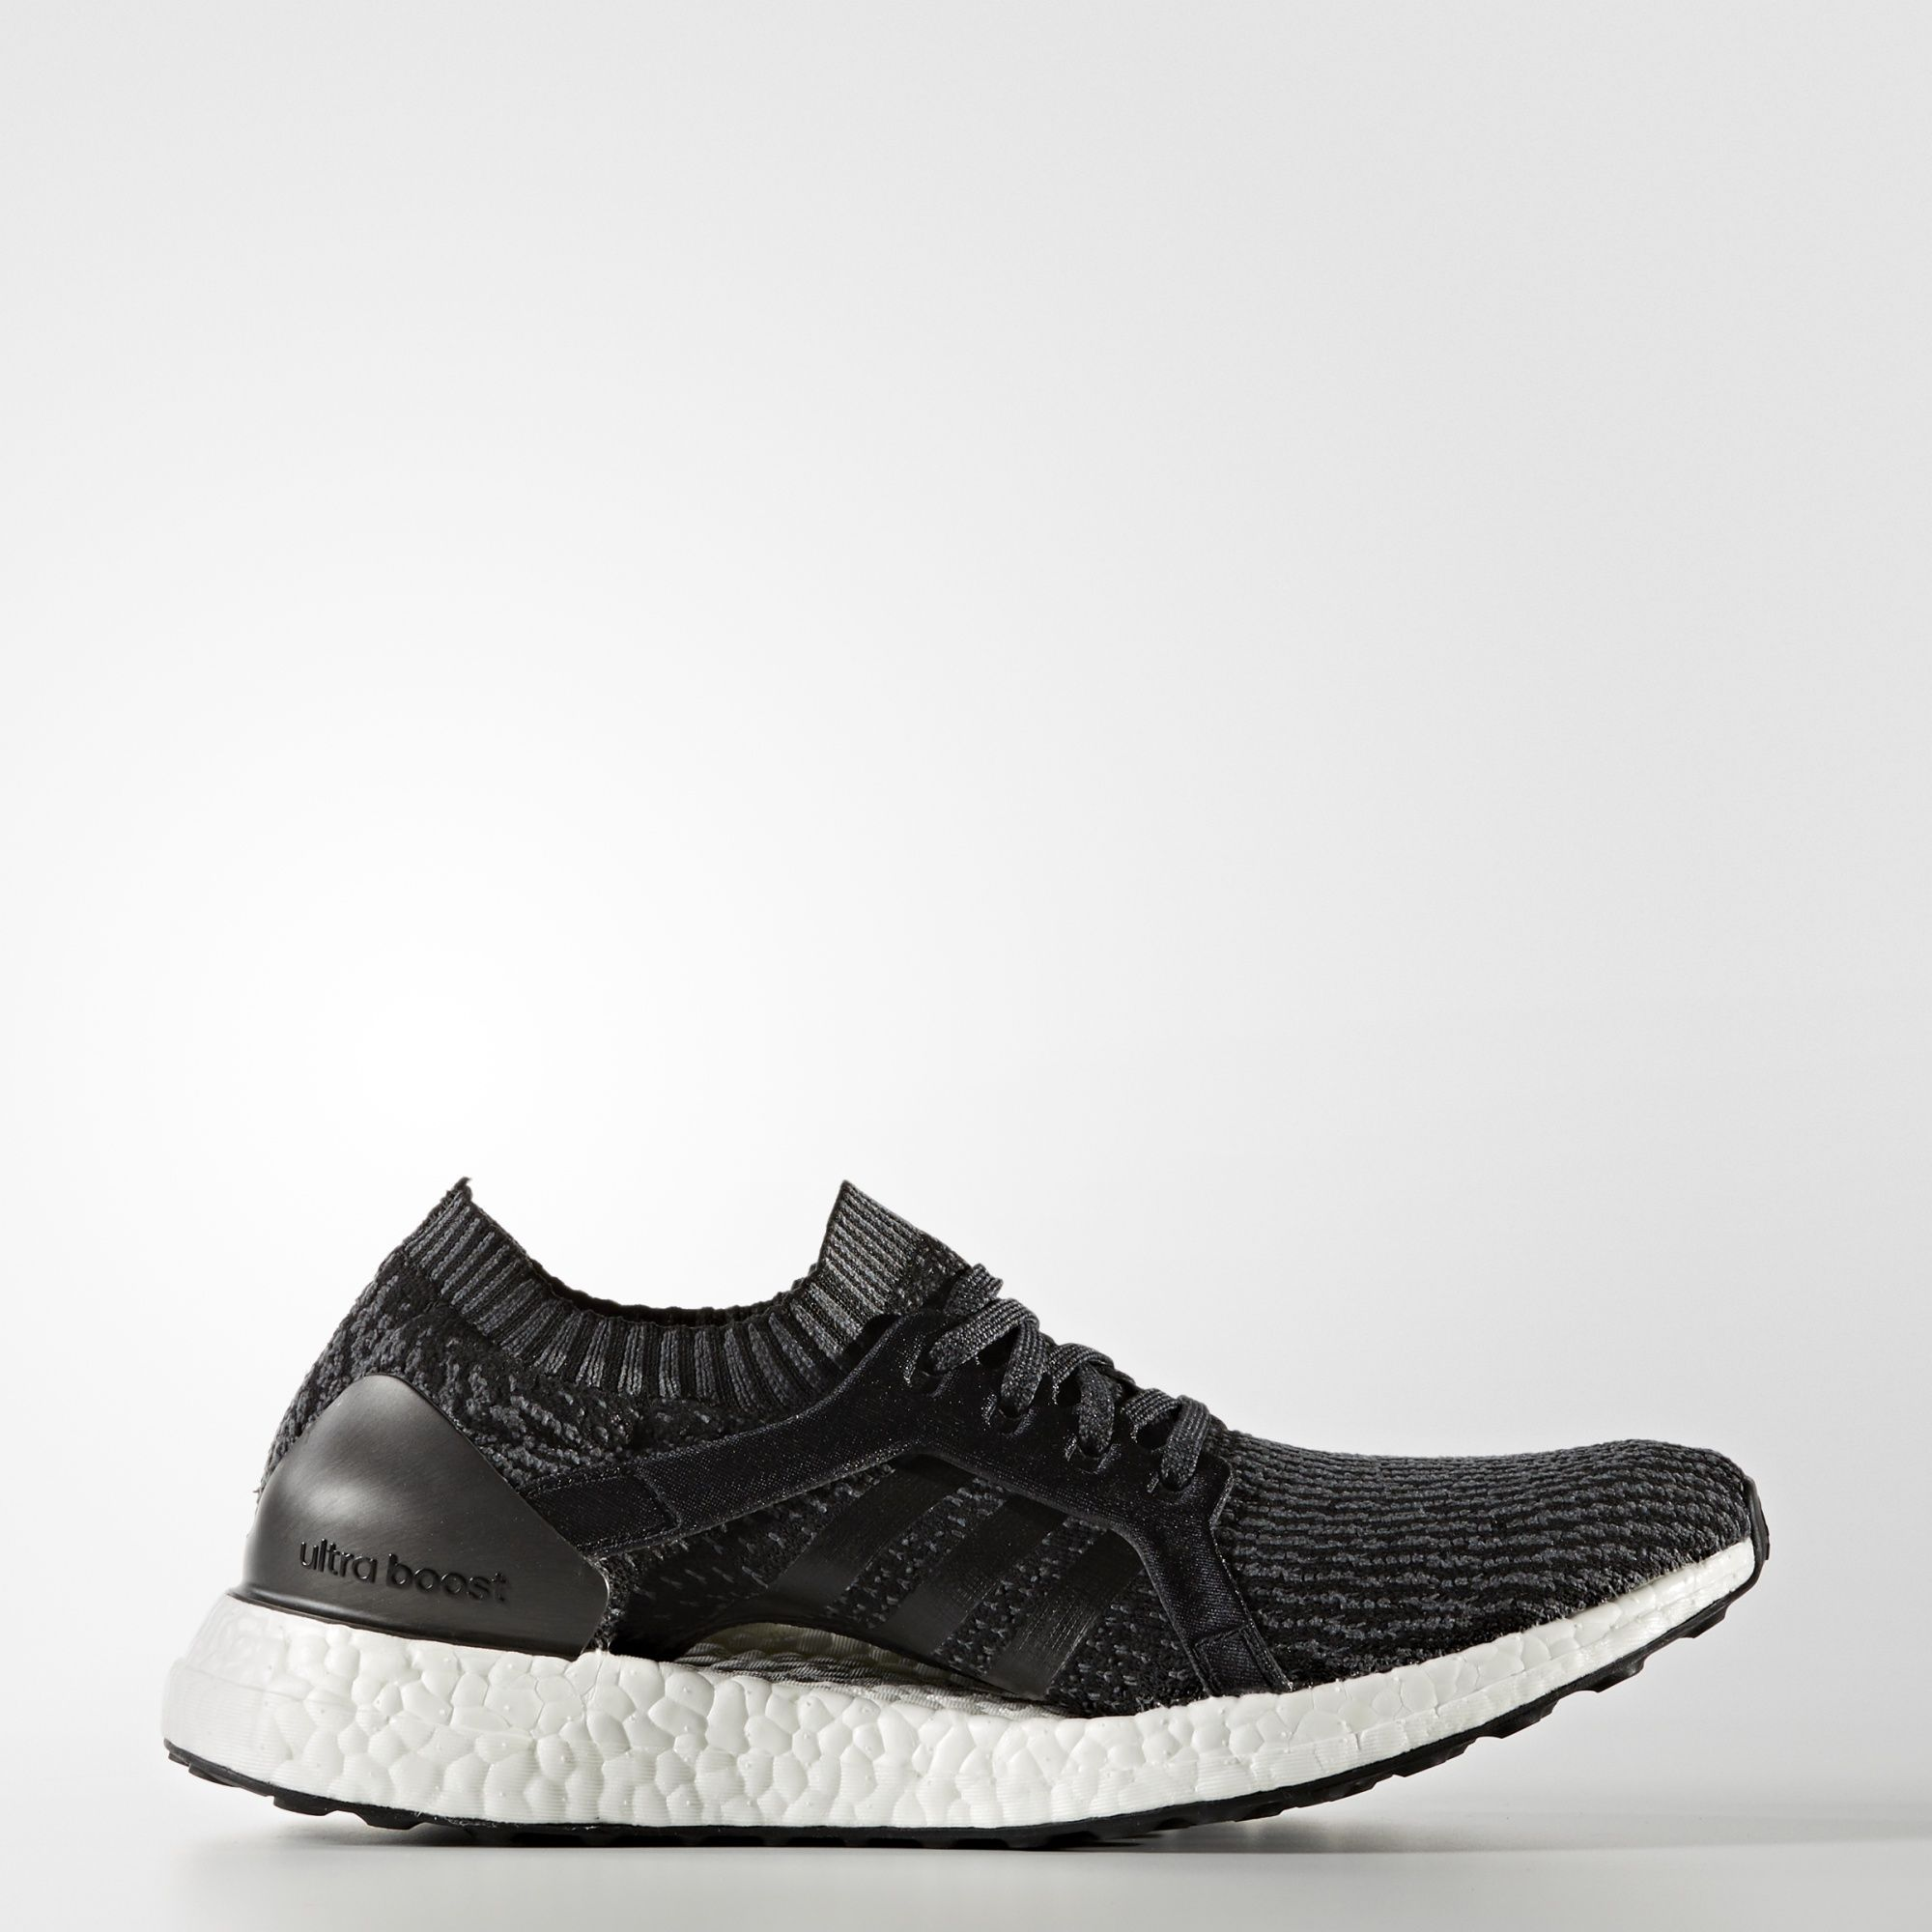 Adidas UltraBOOST X shoes in the color Core Black   Solid Grey   Onix  (BB1696) 6e24628db